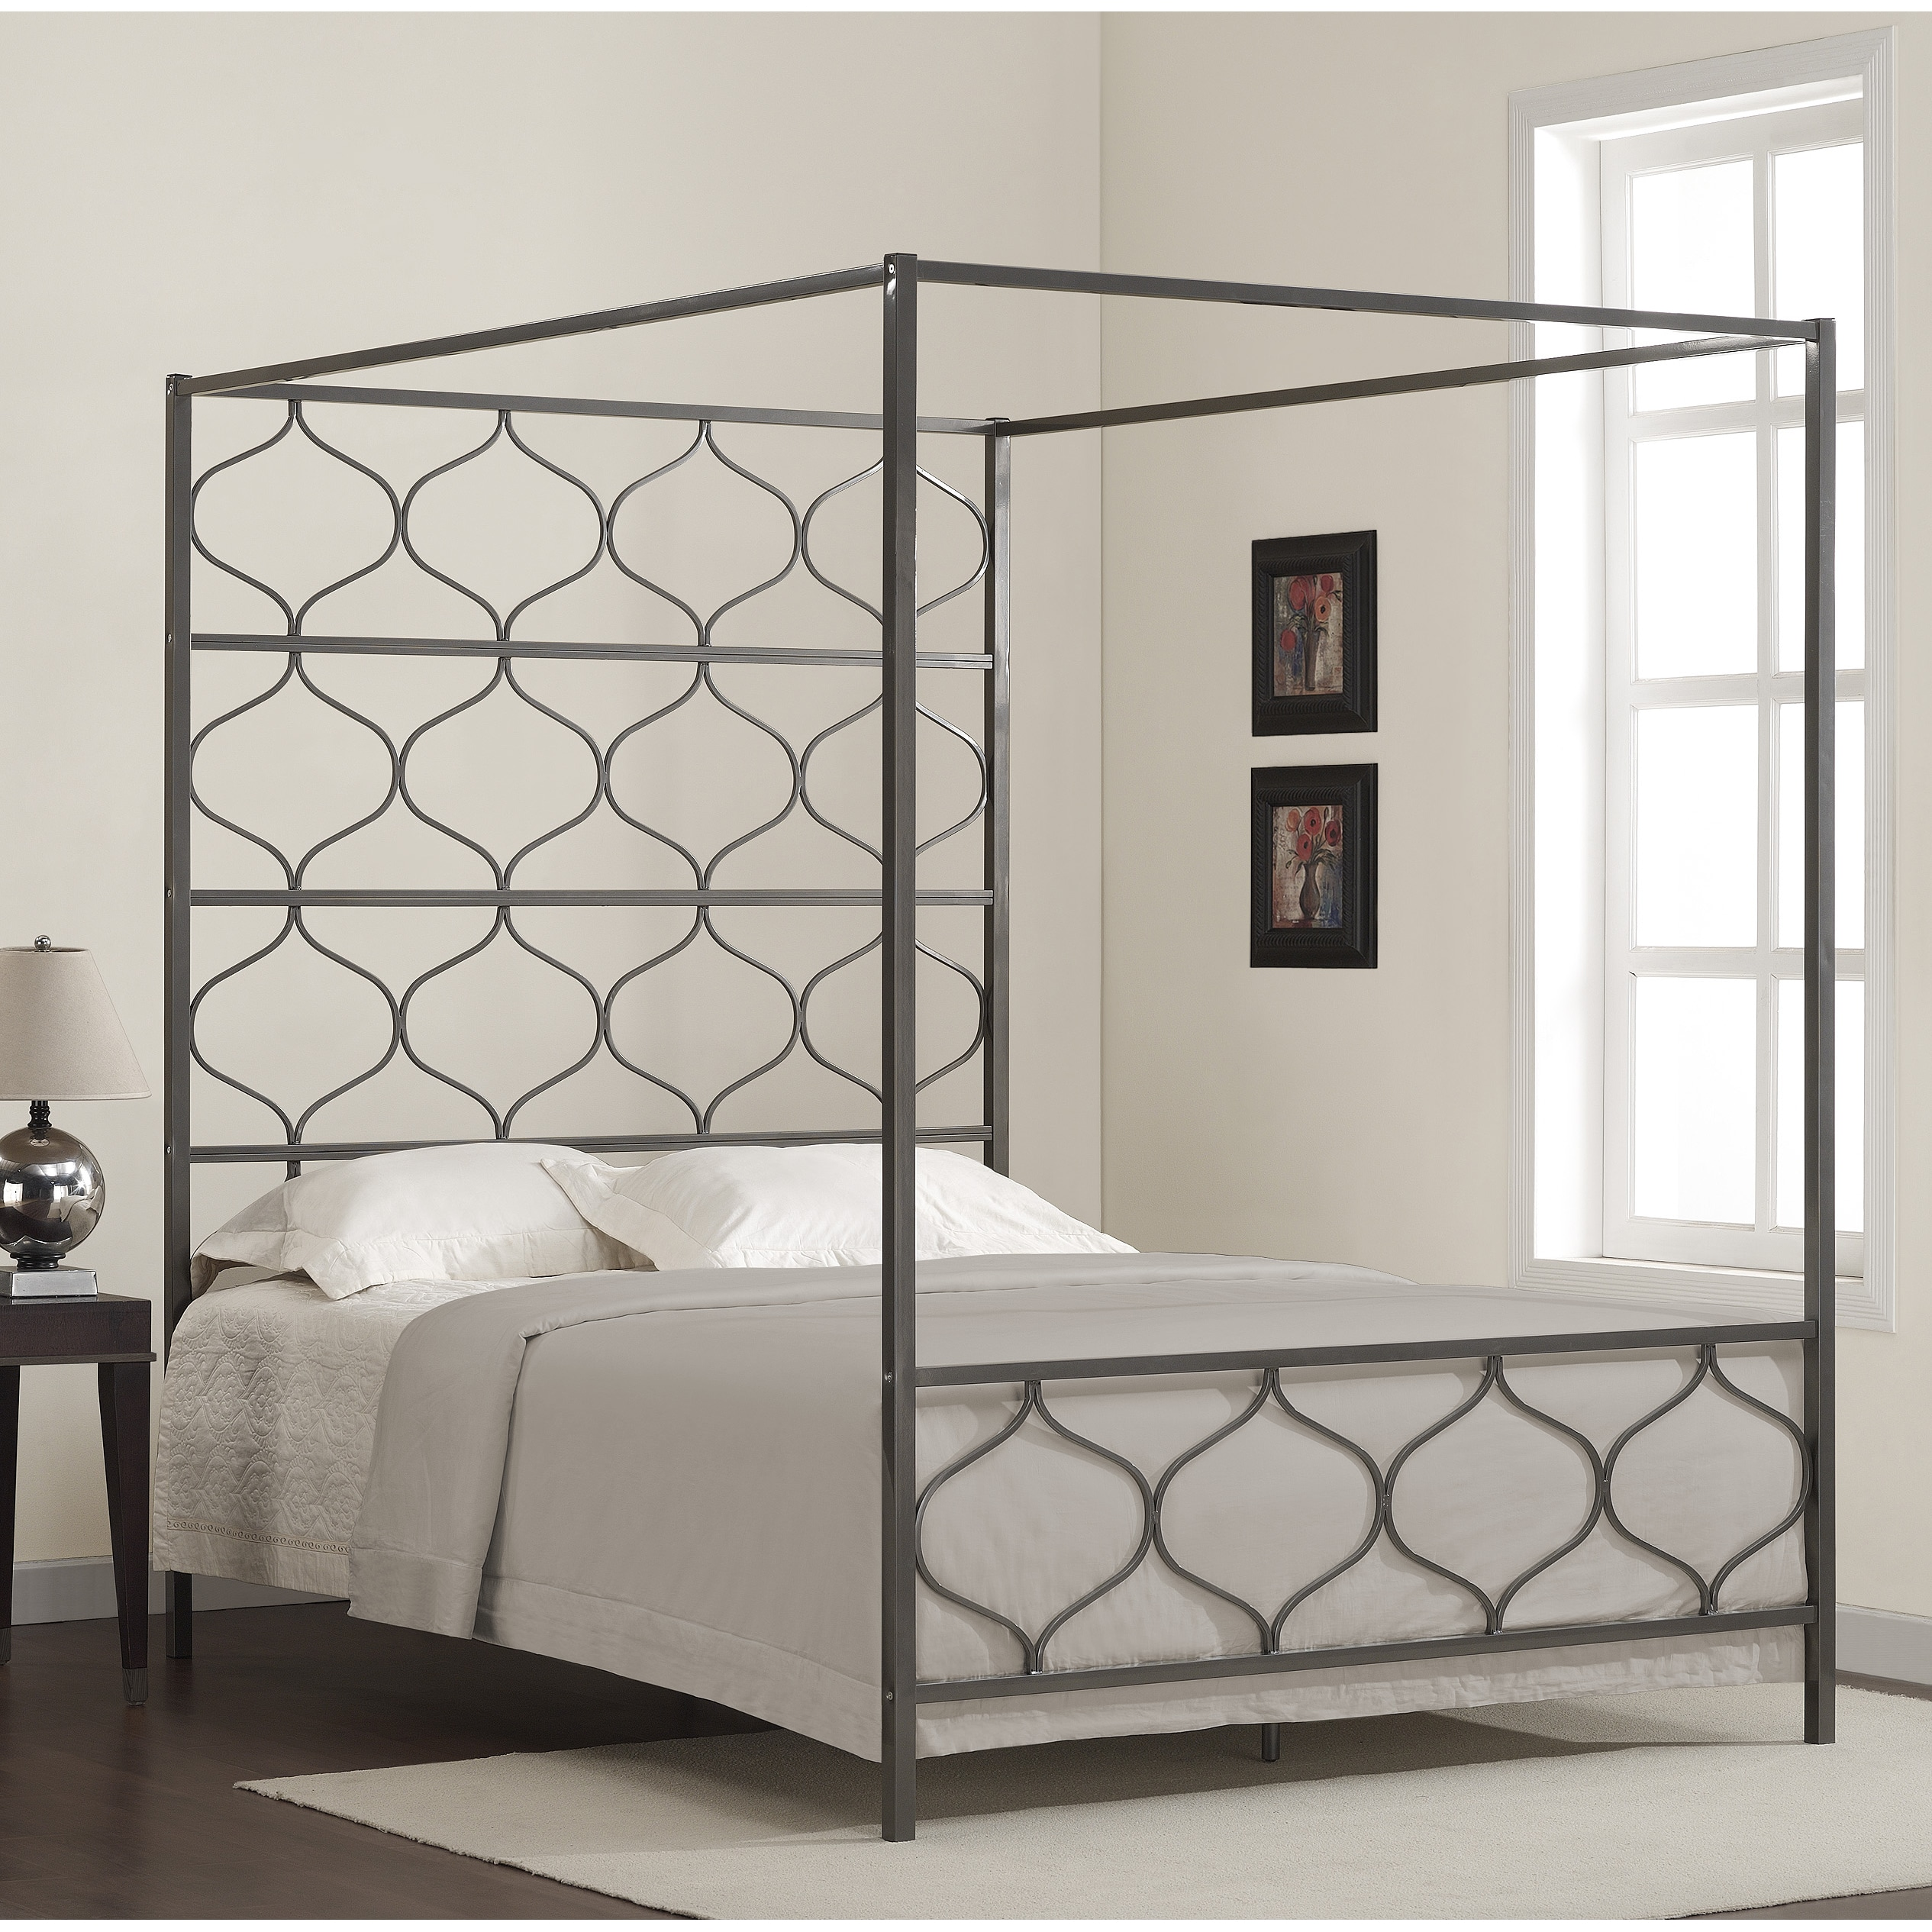 reviews pdp ca bedroom set mercury kosinski canopy queen wayfair bed furniture row